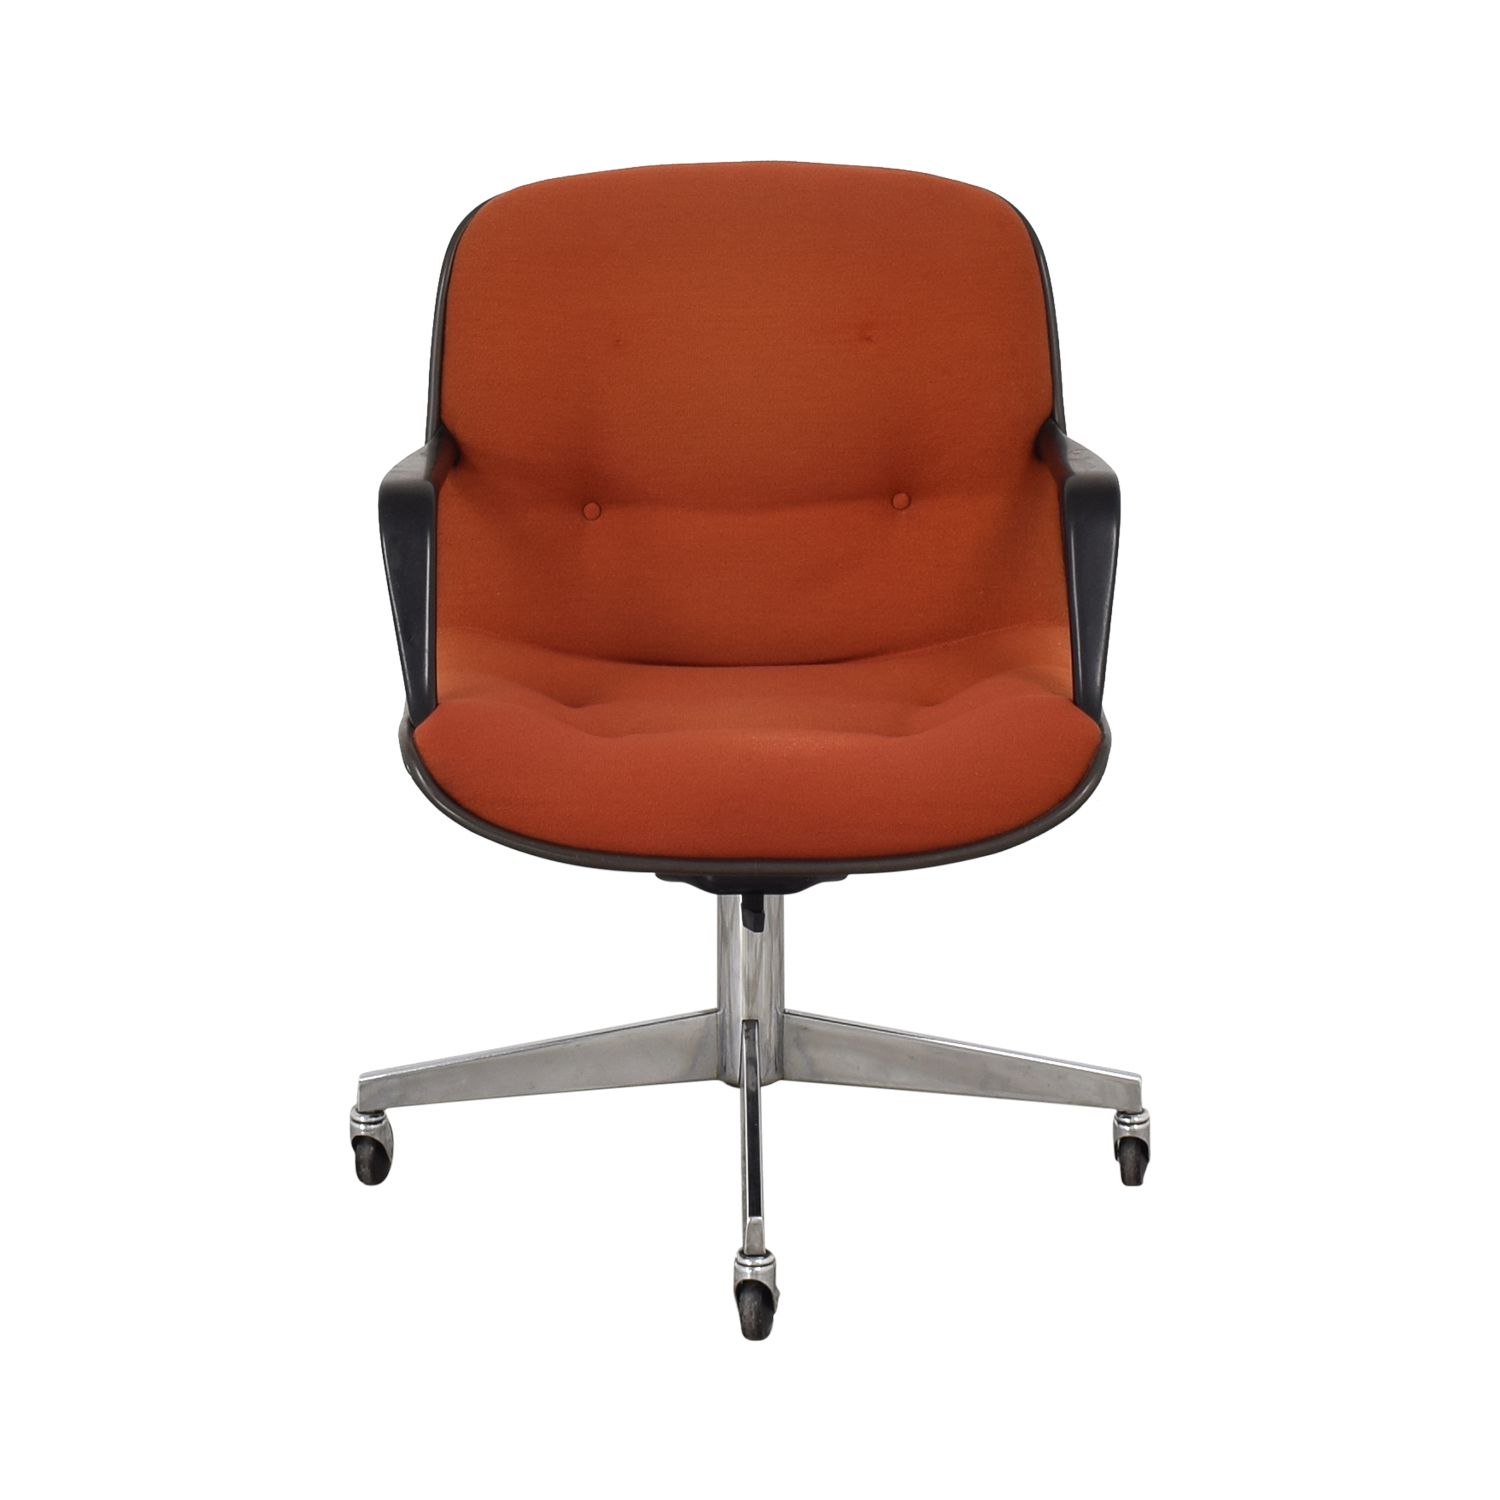 Steelcase Steelcase 451 Supervisors Desk Chair coupon